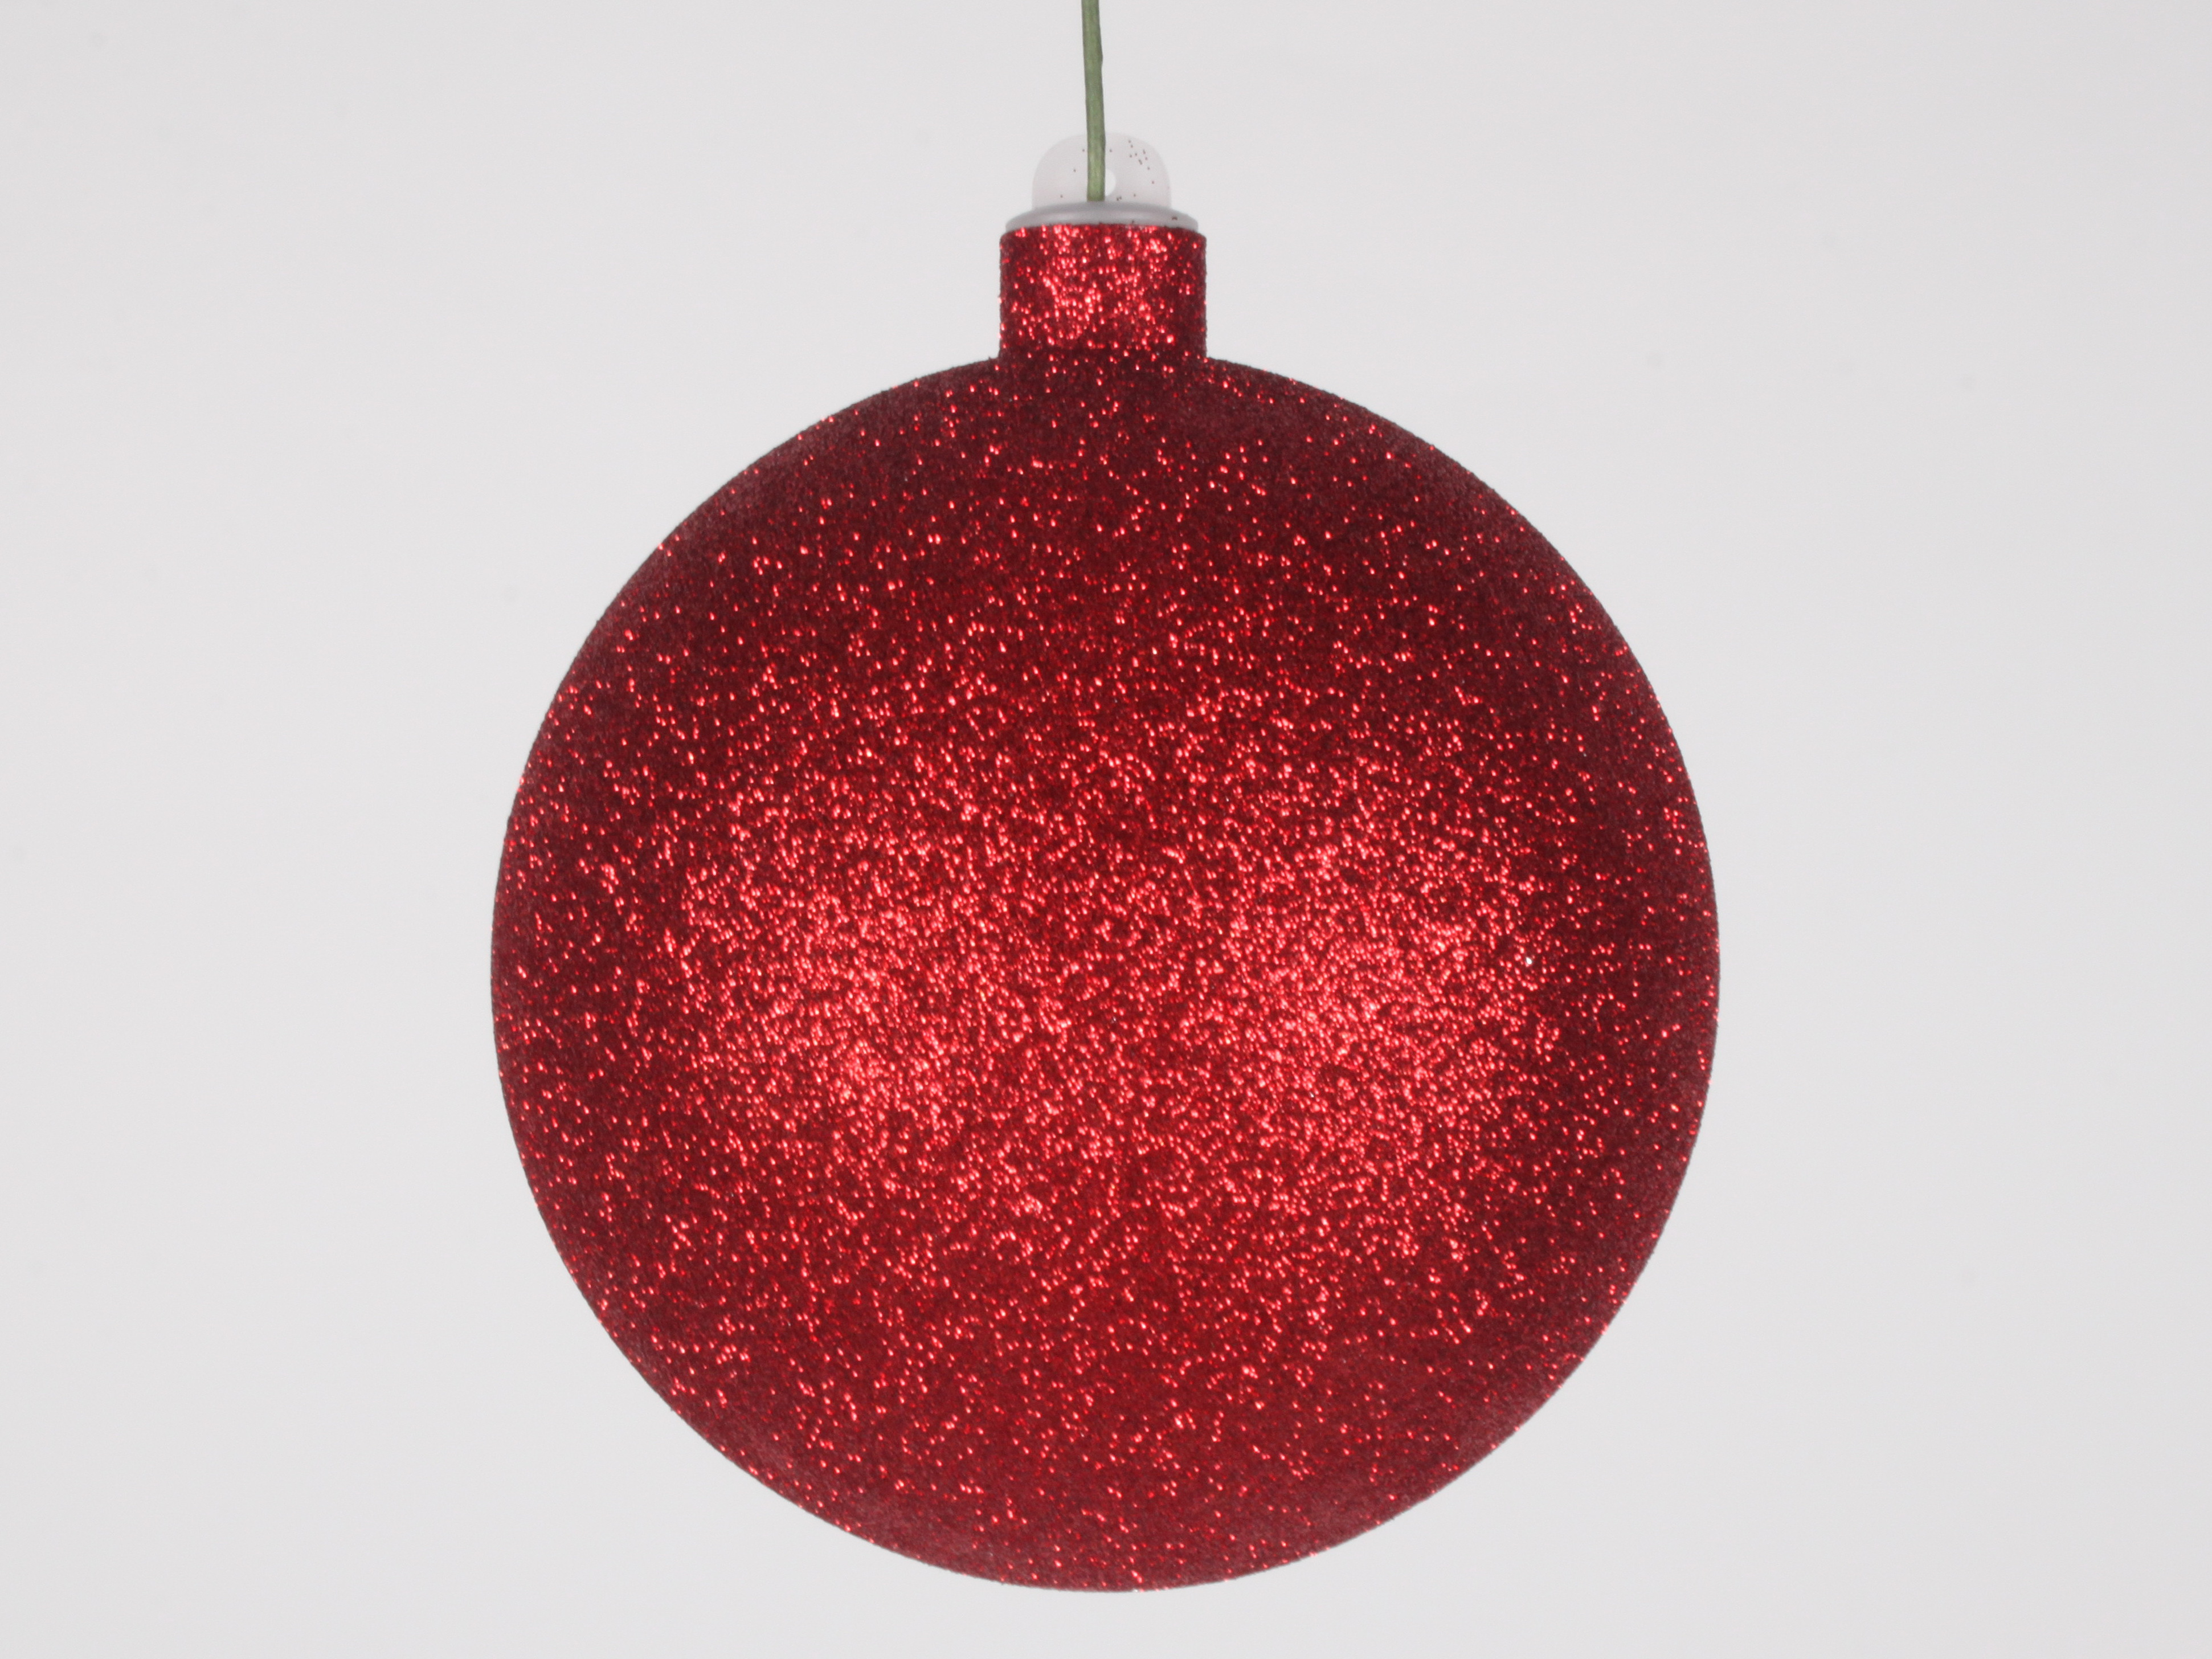 Red christmas balls photo